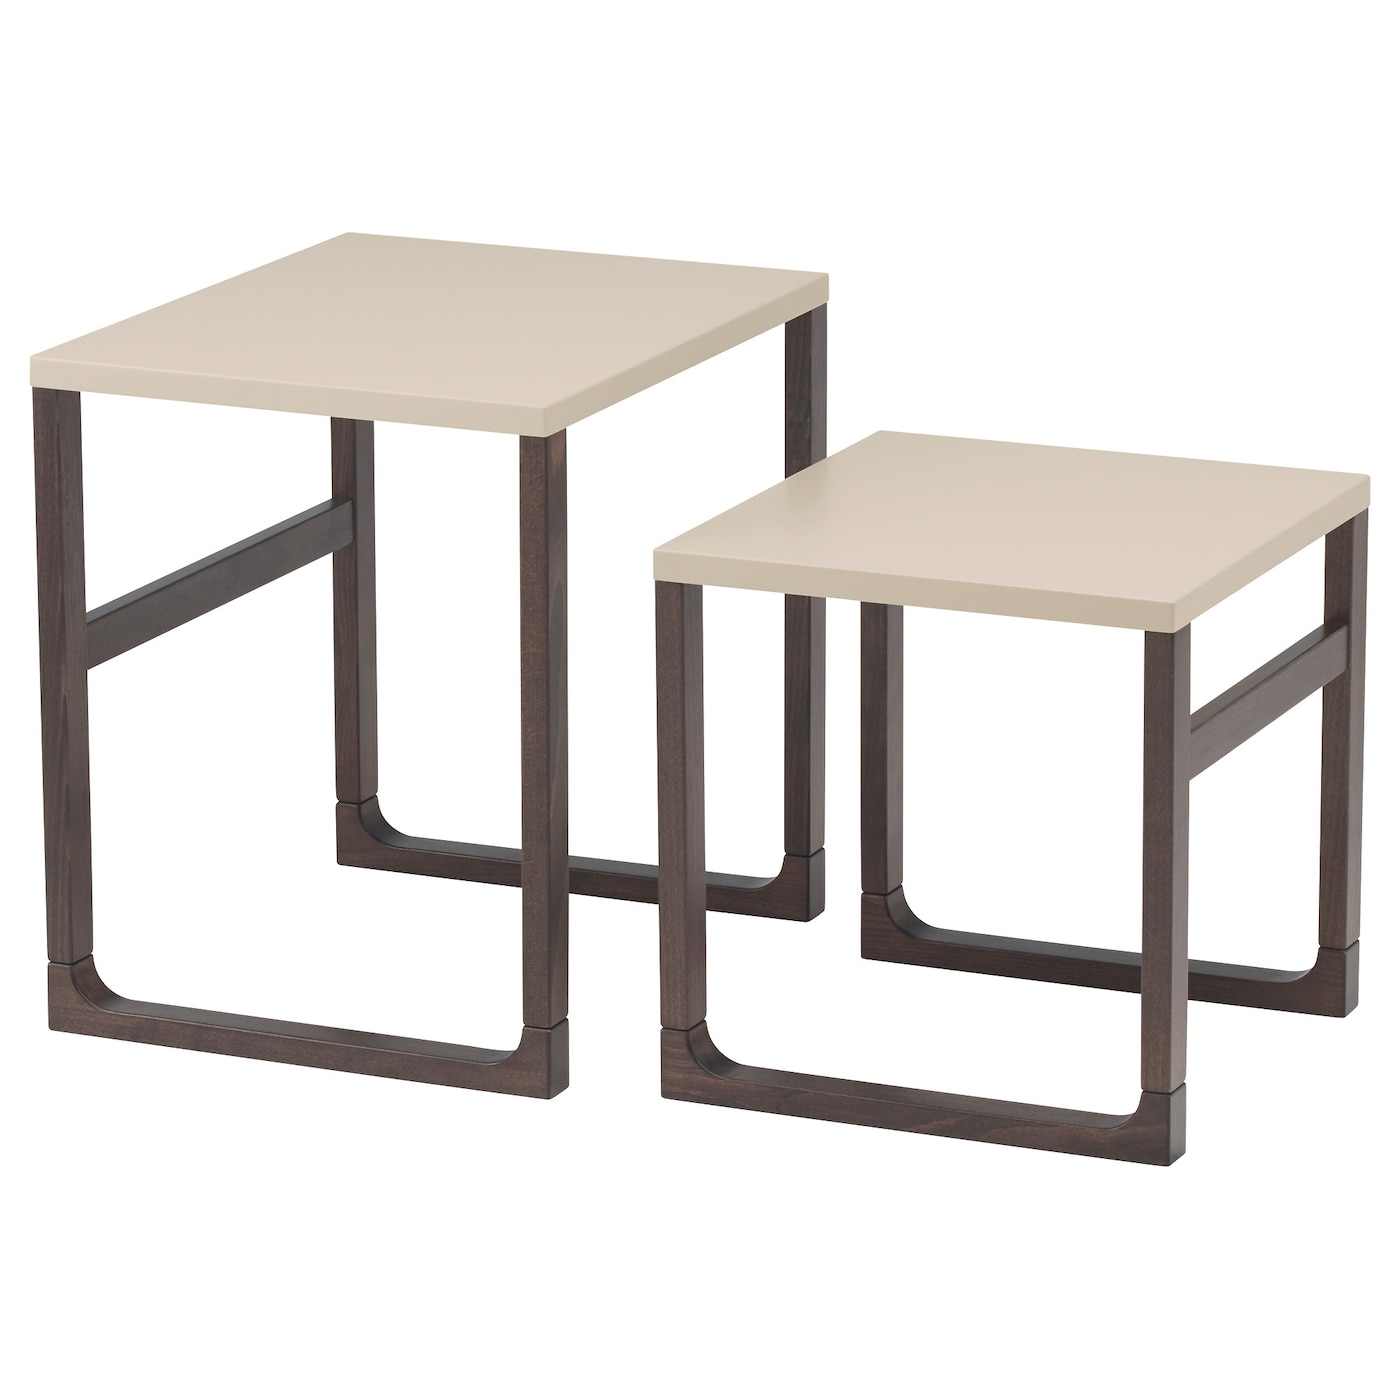 Ikea Rissna Nest Of Tables Set Of 2 Can Be Used Individually Or Be Pushed